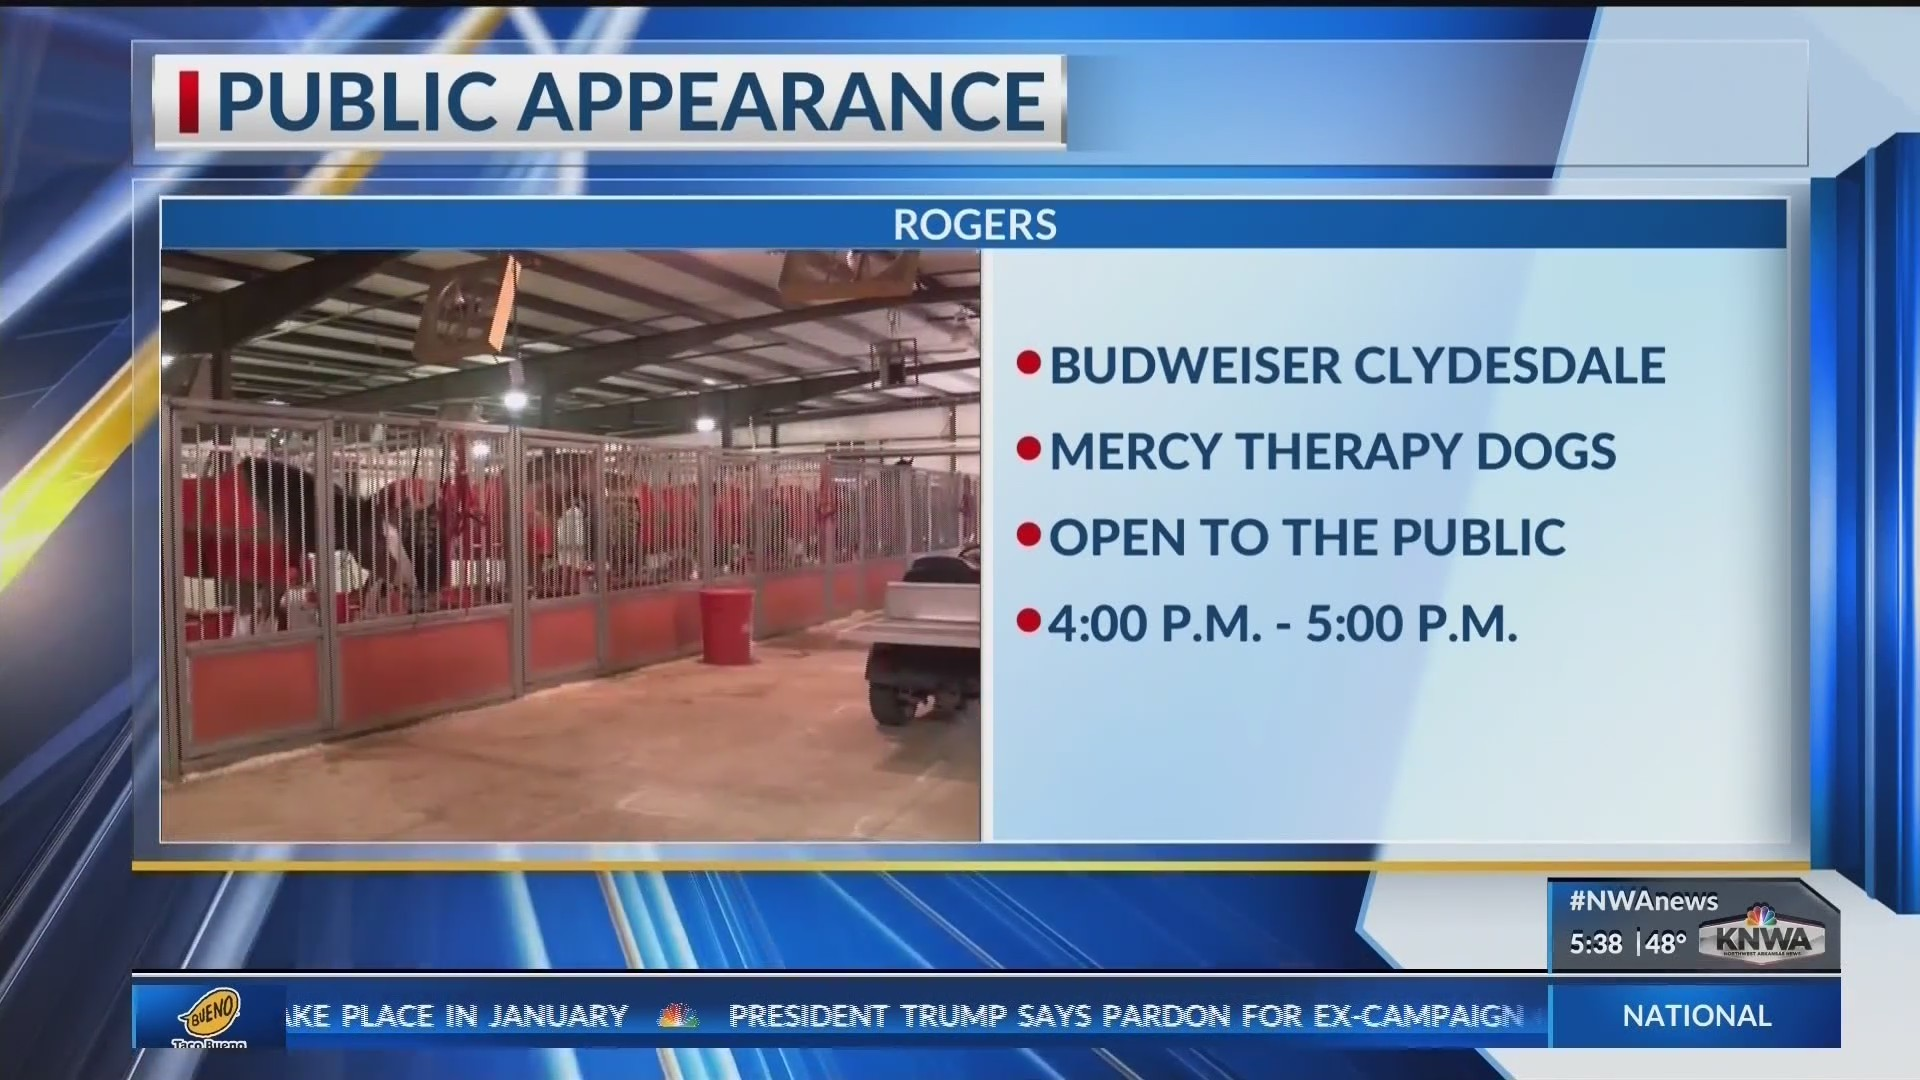 Budweiser_Clydesdale_Making_Appearance_i_0_20181129123902